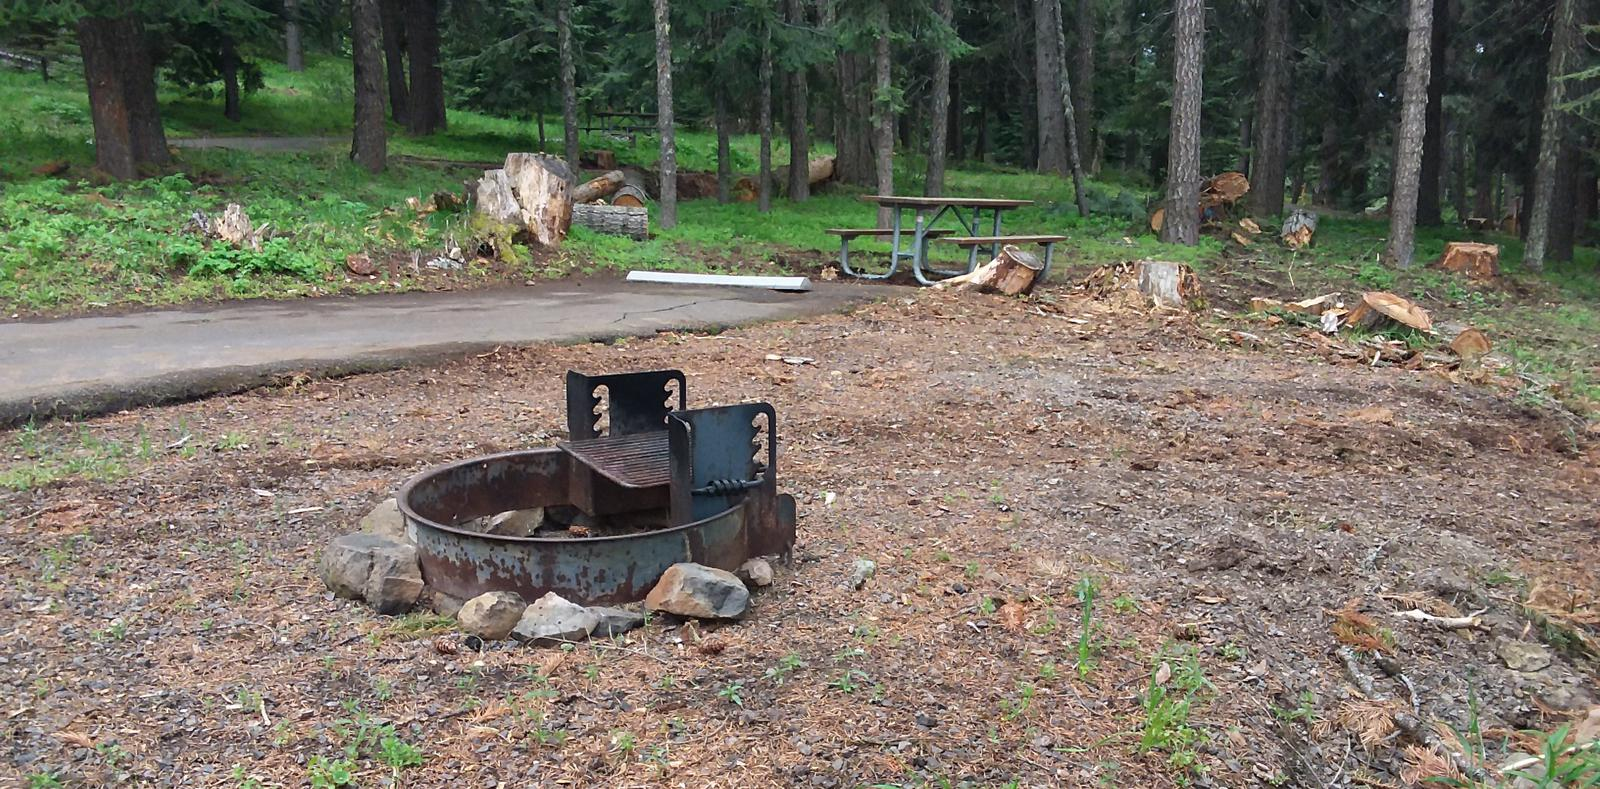 Campsite C35- Hyatt LakeCampsite 35, C Loop Hyatt Lake